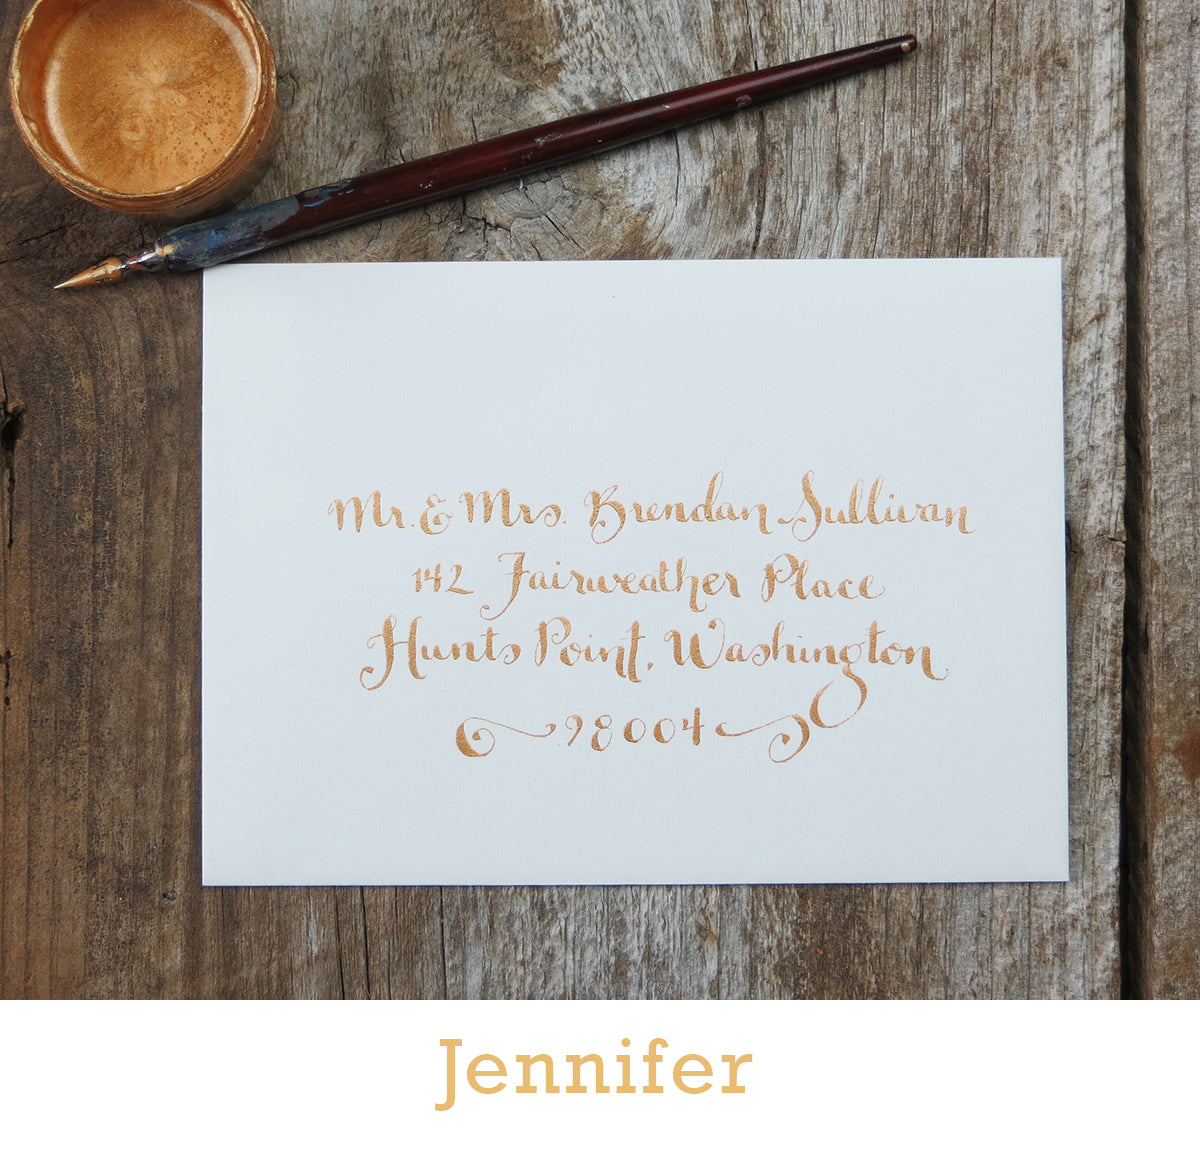 Jennifer calligraphy El's Cards